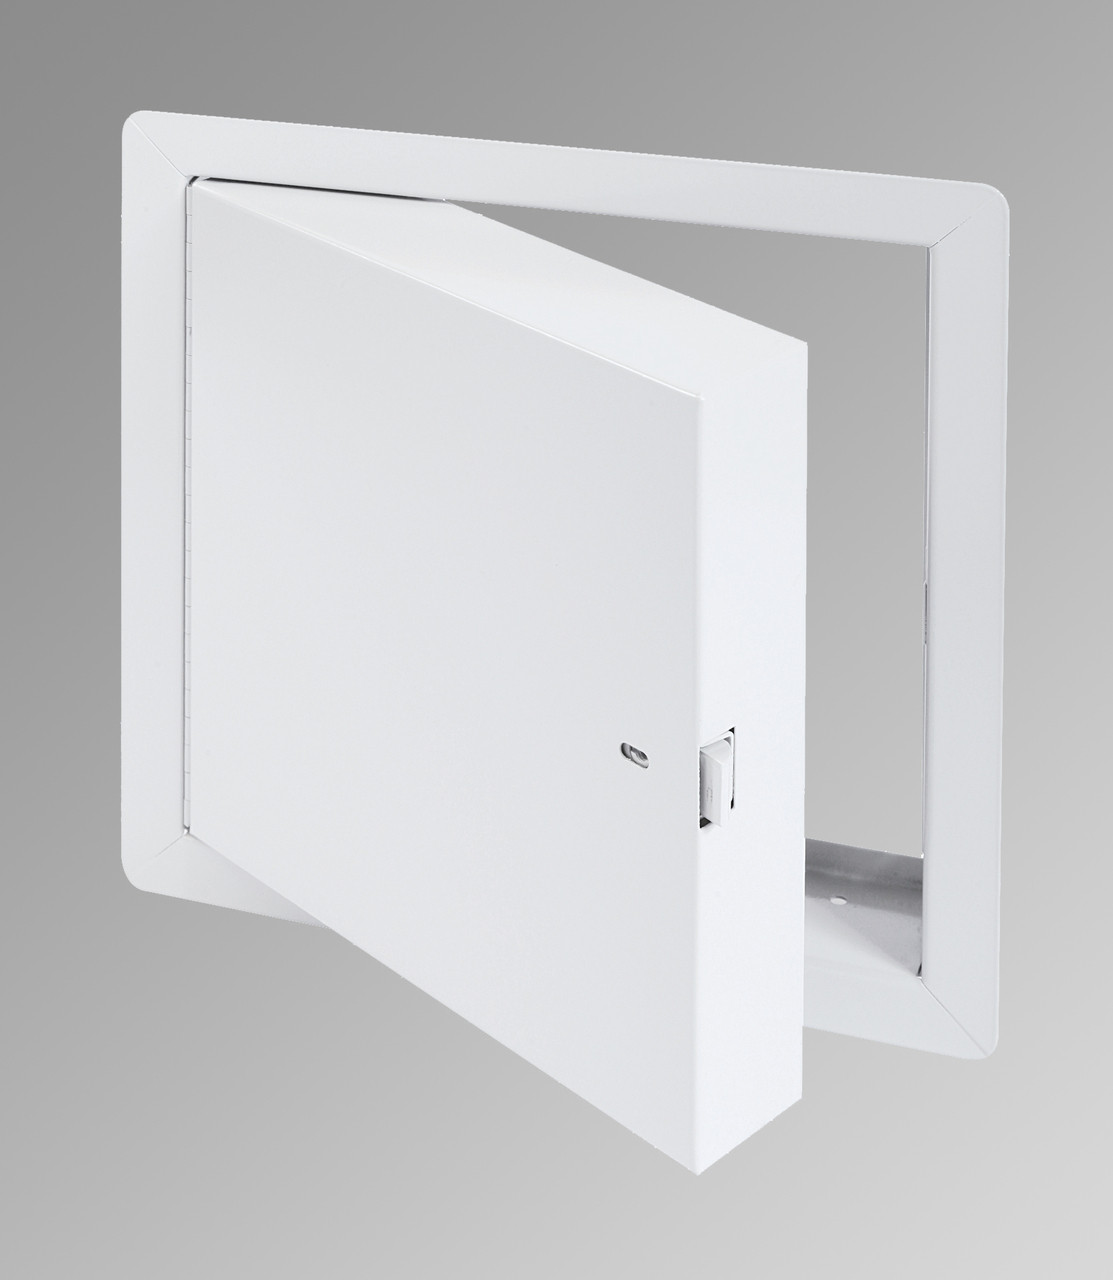 36 Quot X 36 Quot Fire Rated Insulated Access Door With Flange